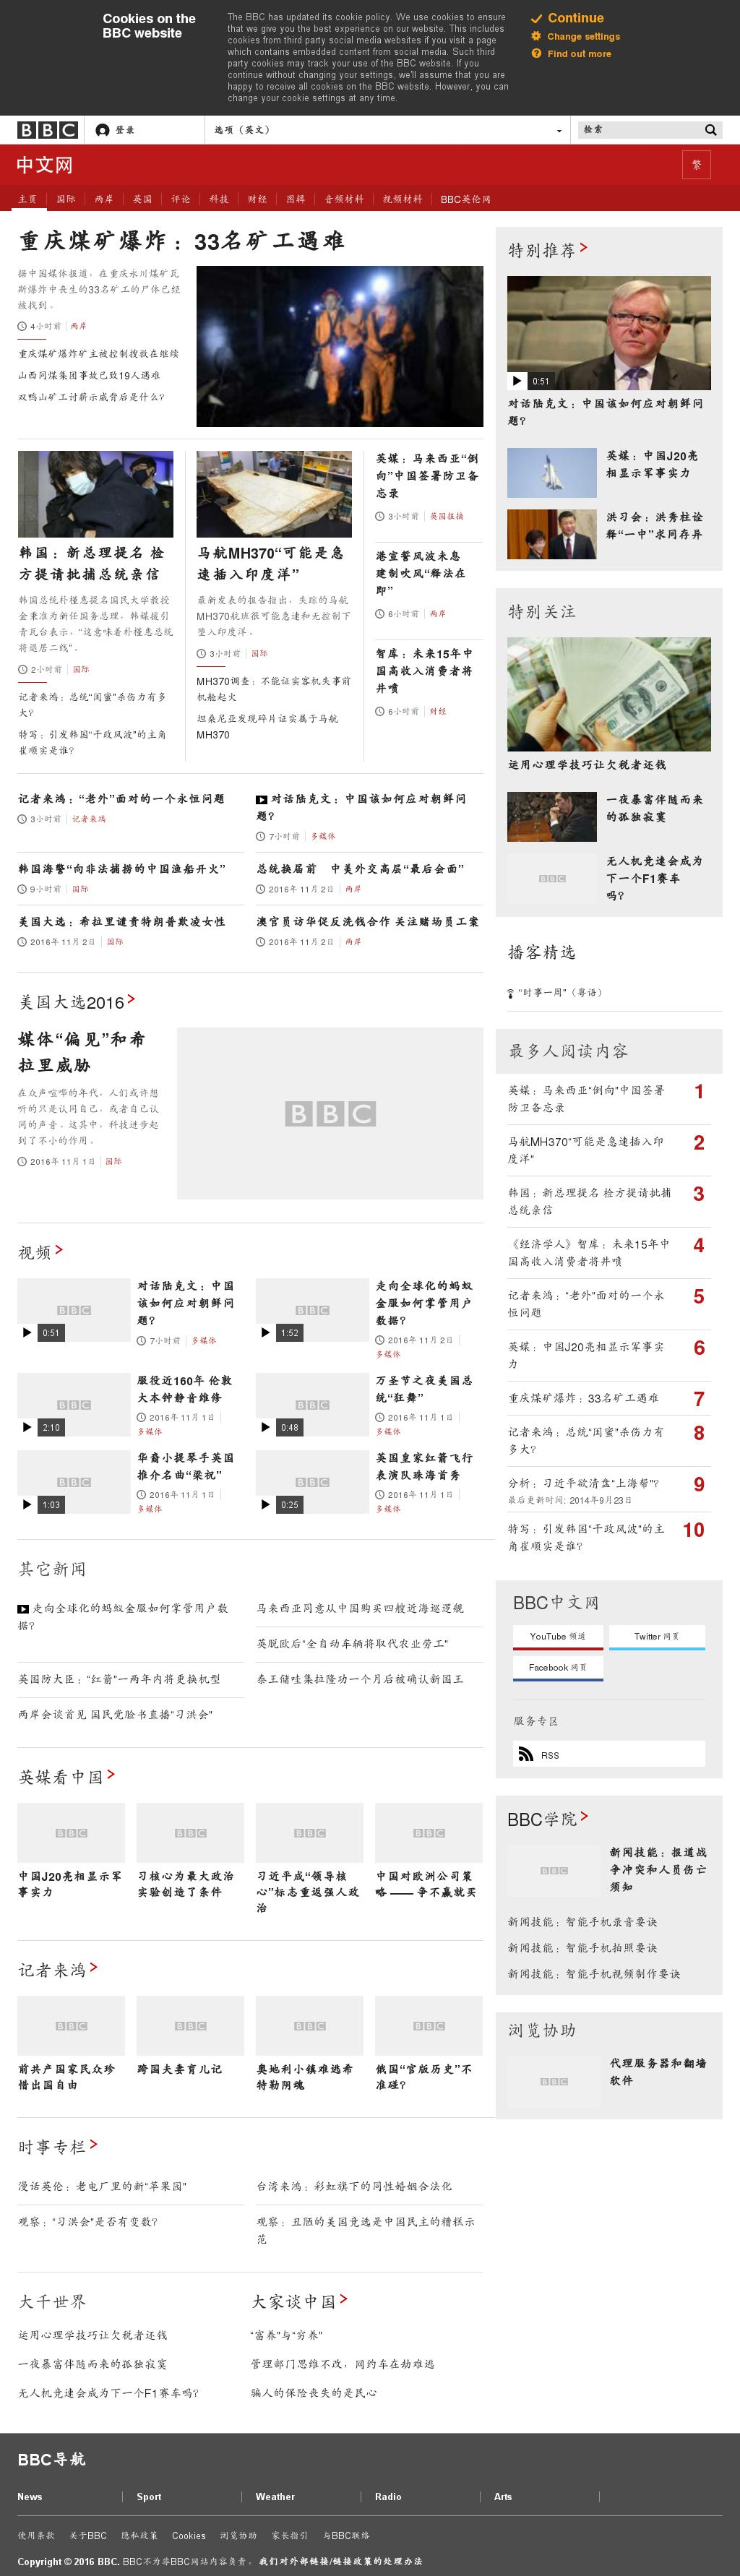 BBC (Chinese) at Wednesday Nov. 2, 2016, 2:01 p.m. UTC